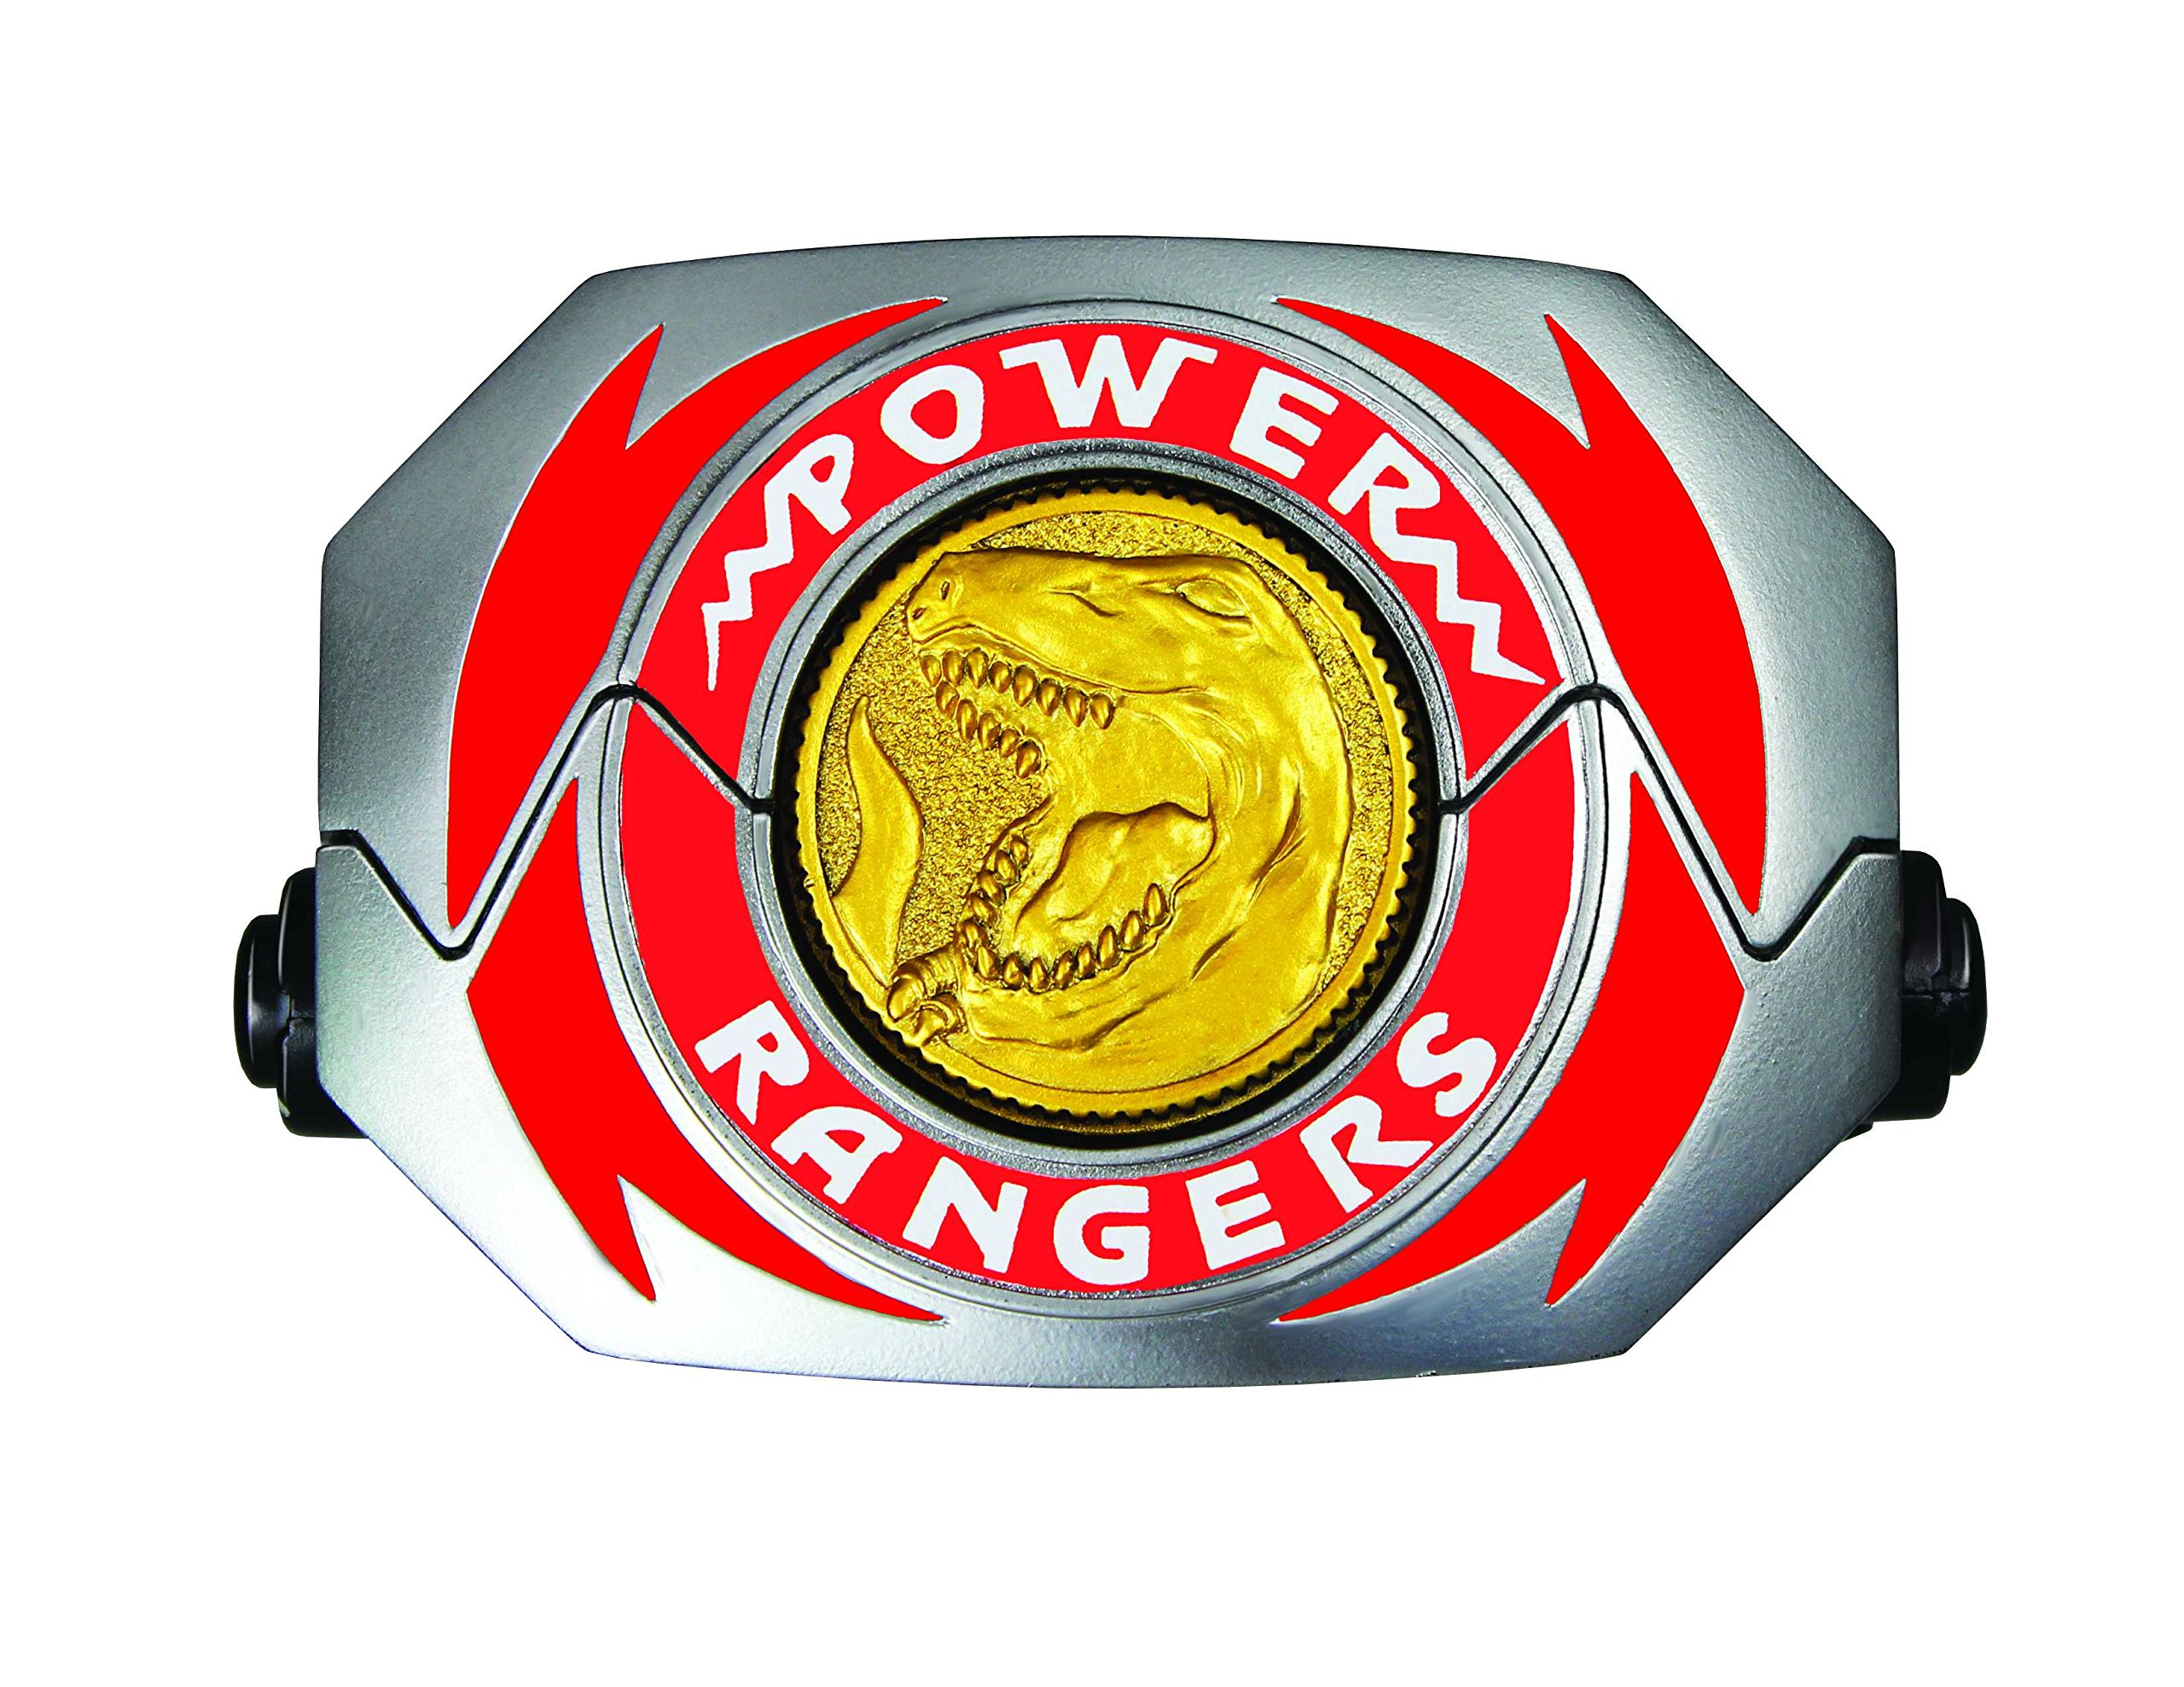 Power Rangers Mighty Morphin Movie Legacy Morpher/Power Morpher Red 10